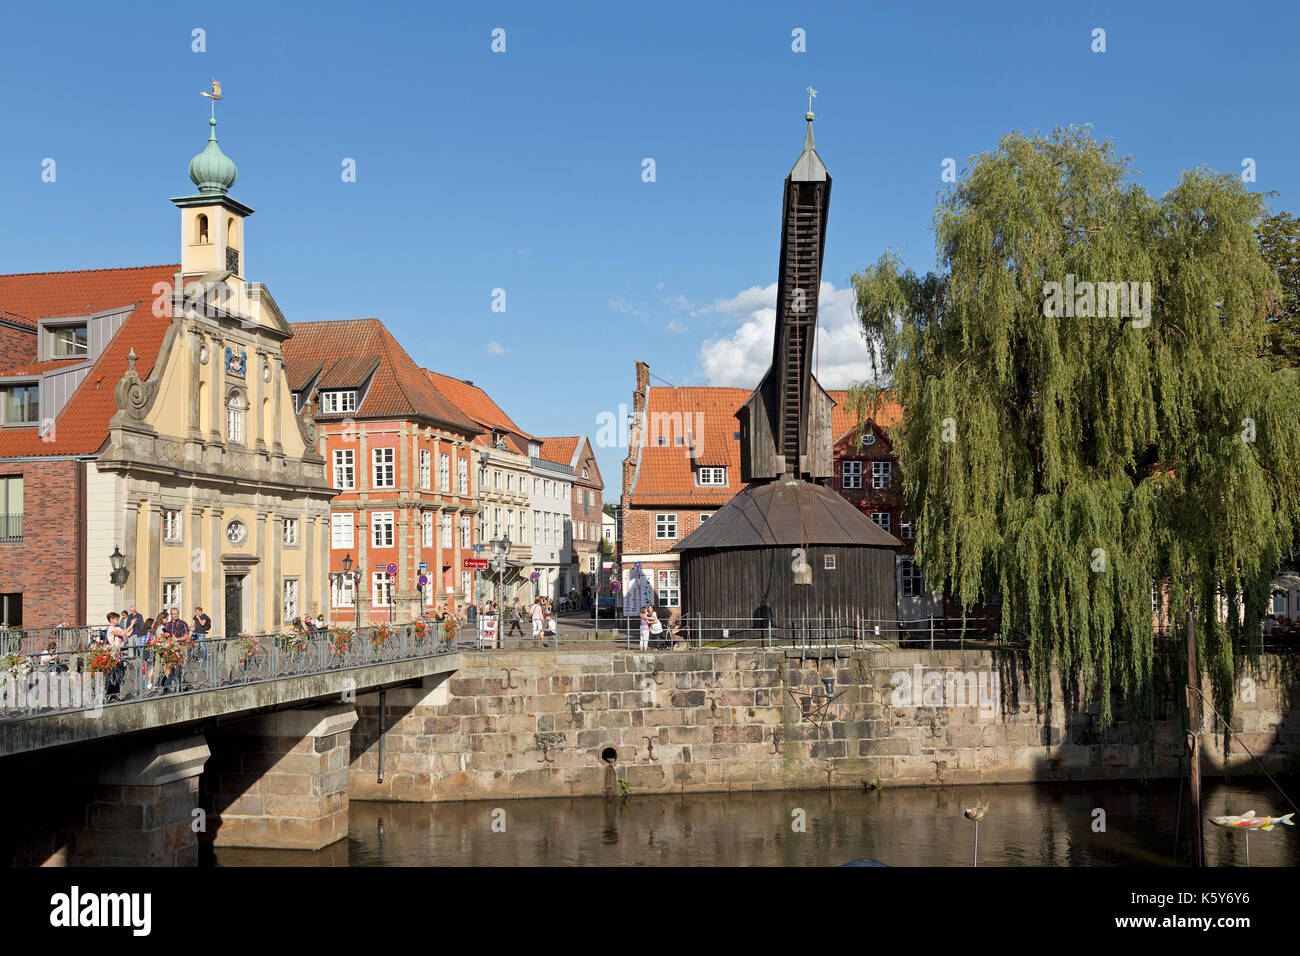 Hotel Altes Kaufhaus and treadwheel crane, Old Harbour, Lueneburg, Lower Saxony, Germany - Stock Image